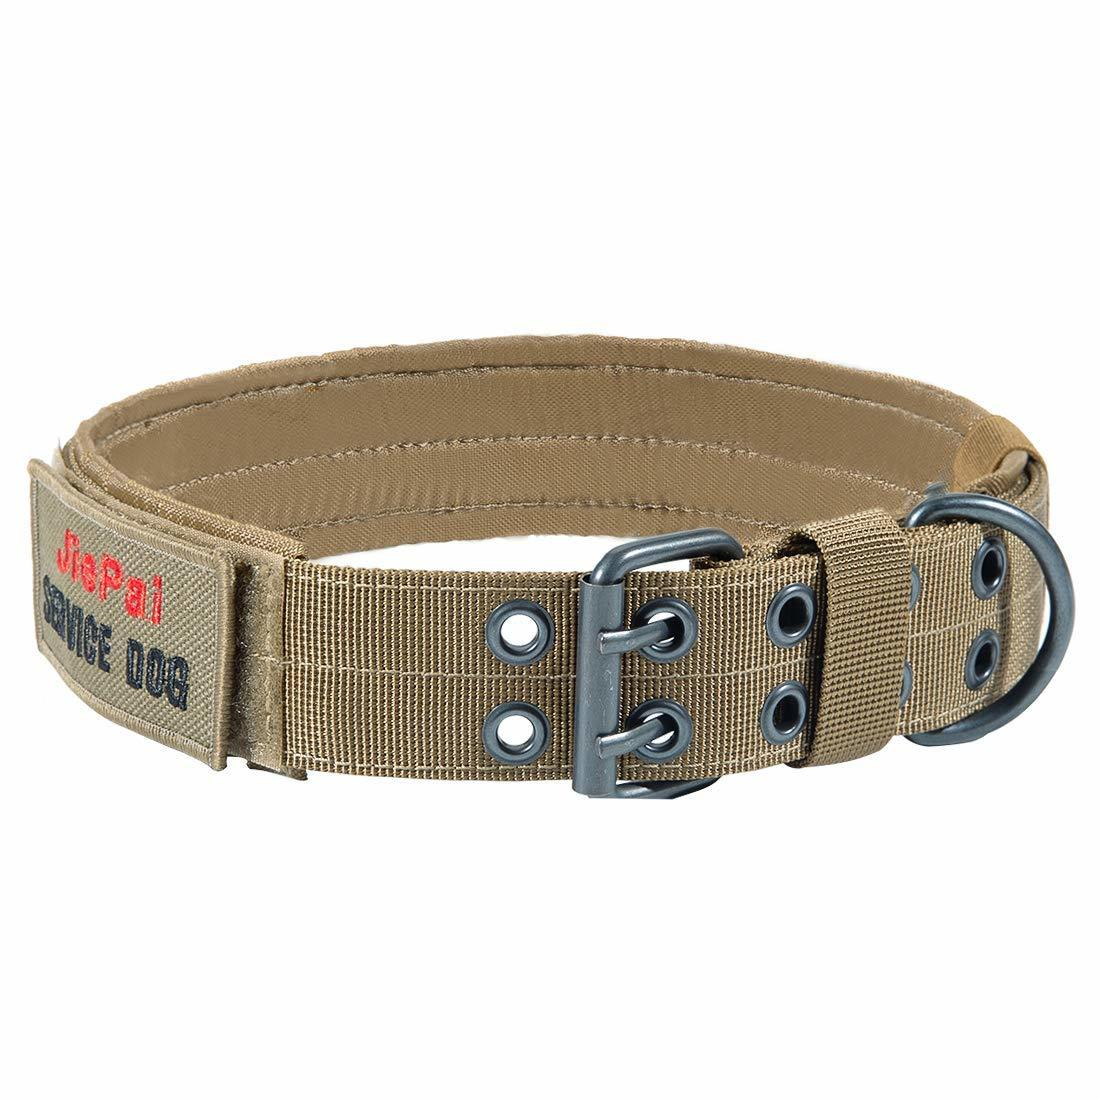 Jeipei collar for German shepherd